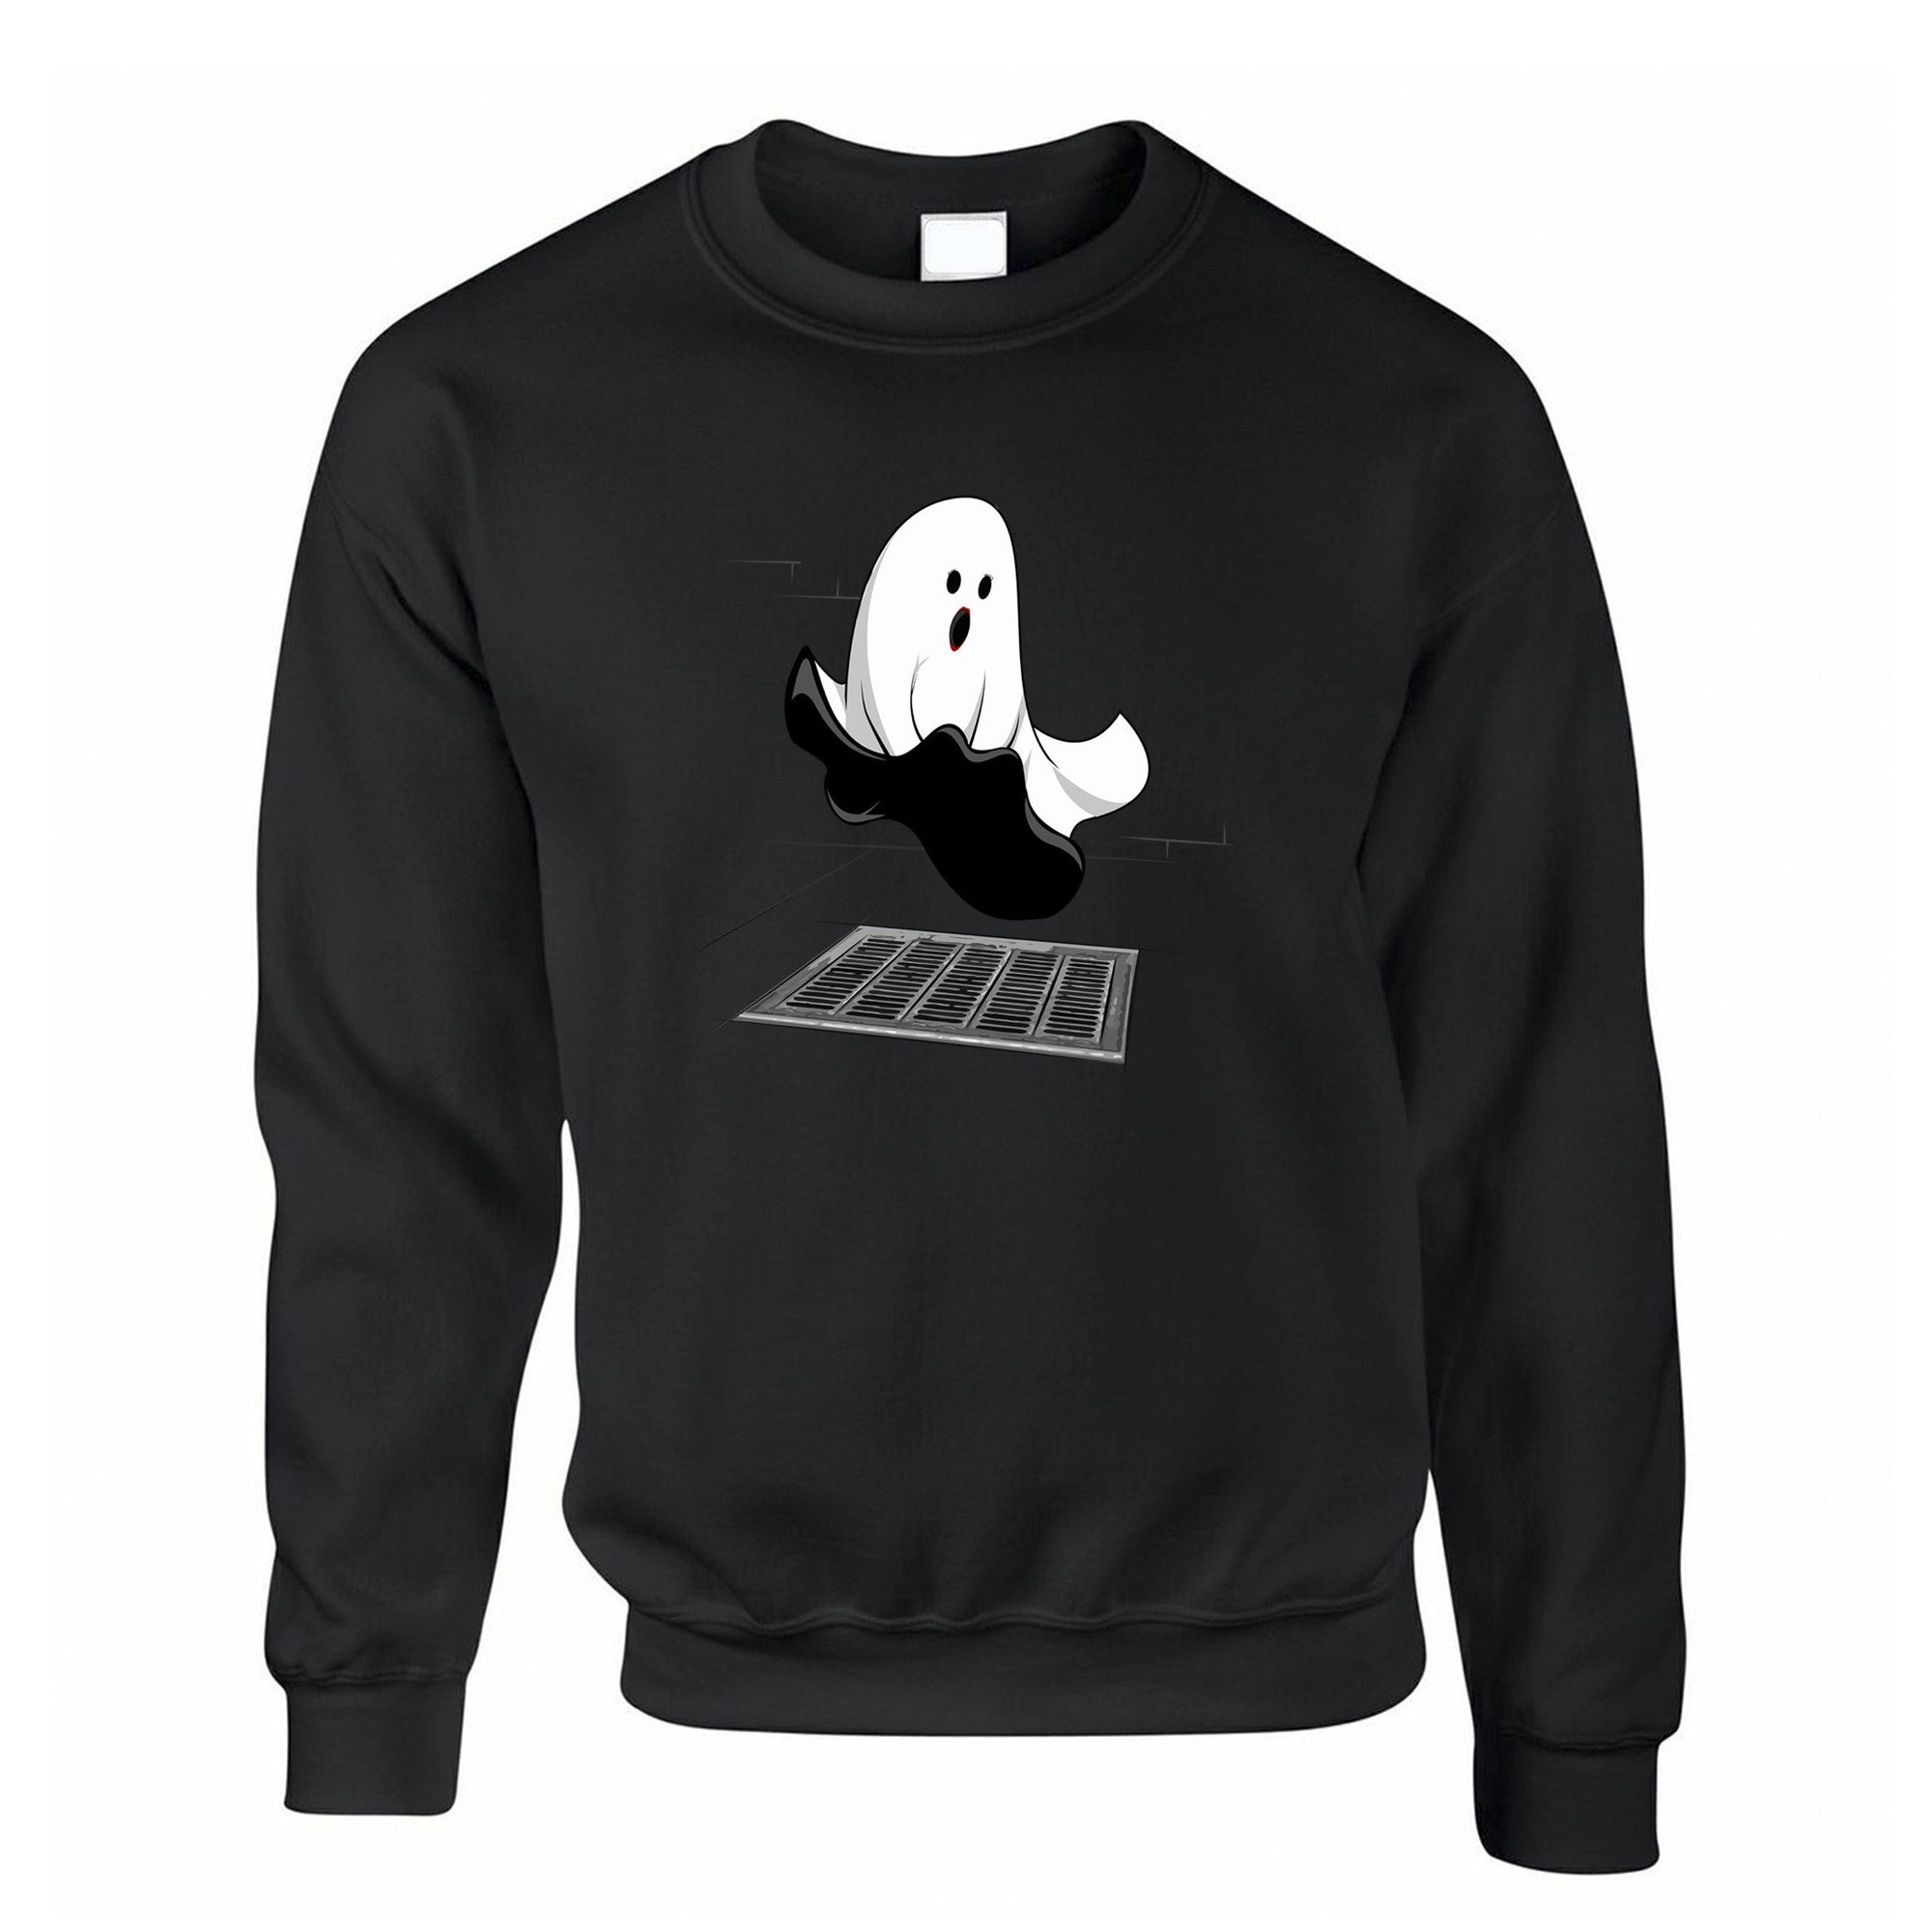 Halloween Jumper Iconic Monroe Ghost Parody Sweatshirt Sweater